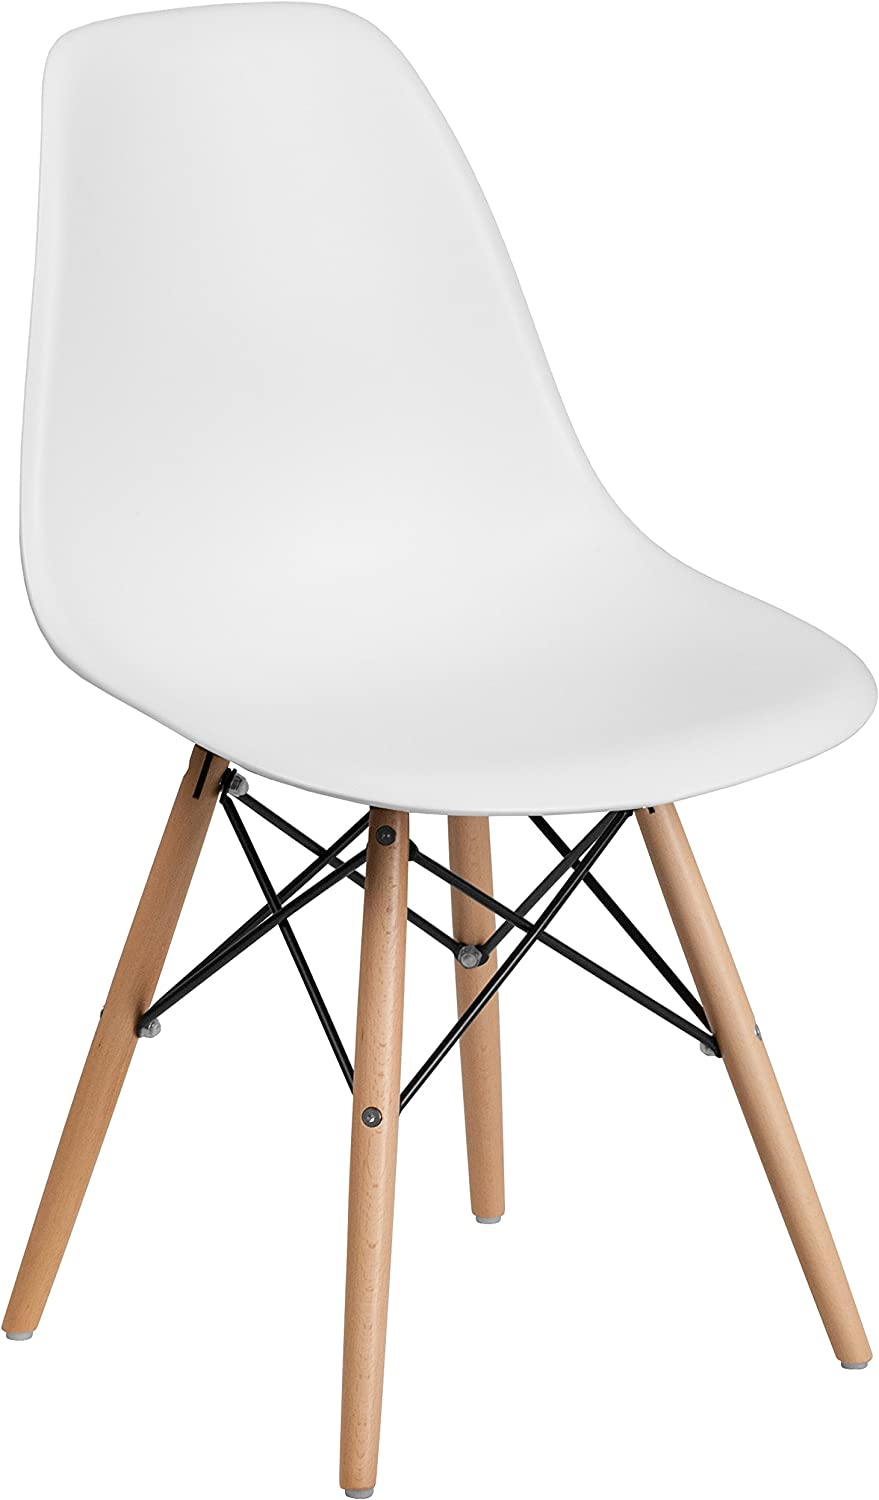 Shop Flash Furniture Elon Series White Plastic Chair with Wooden Legs from Amazon on Openhaus